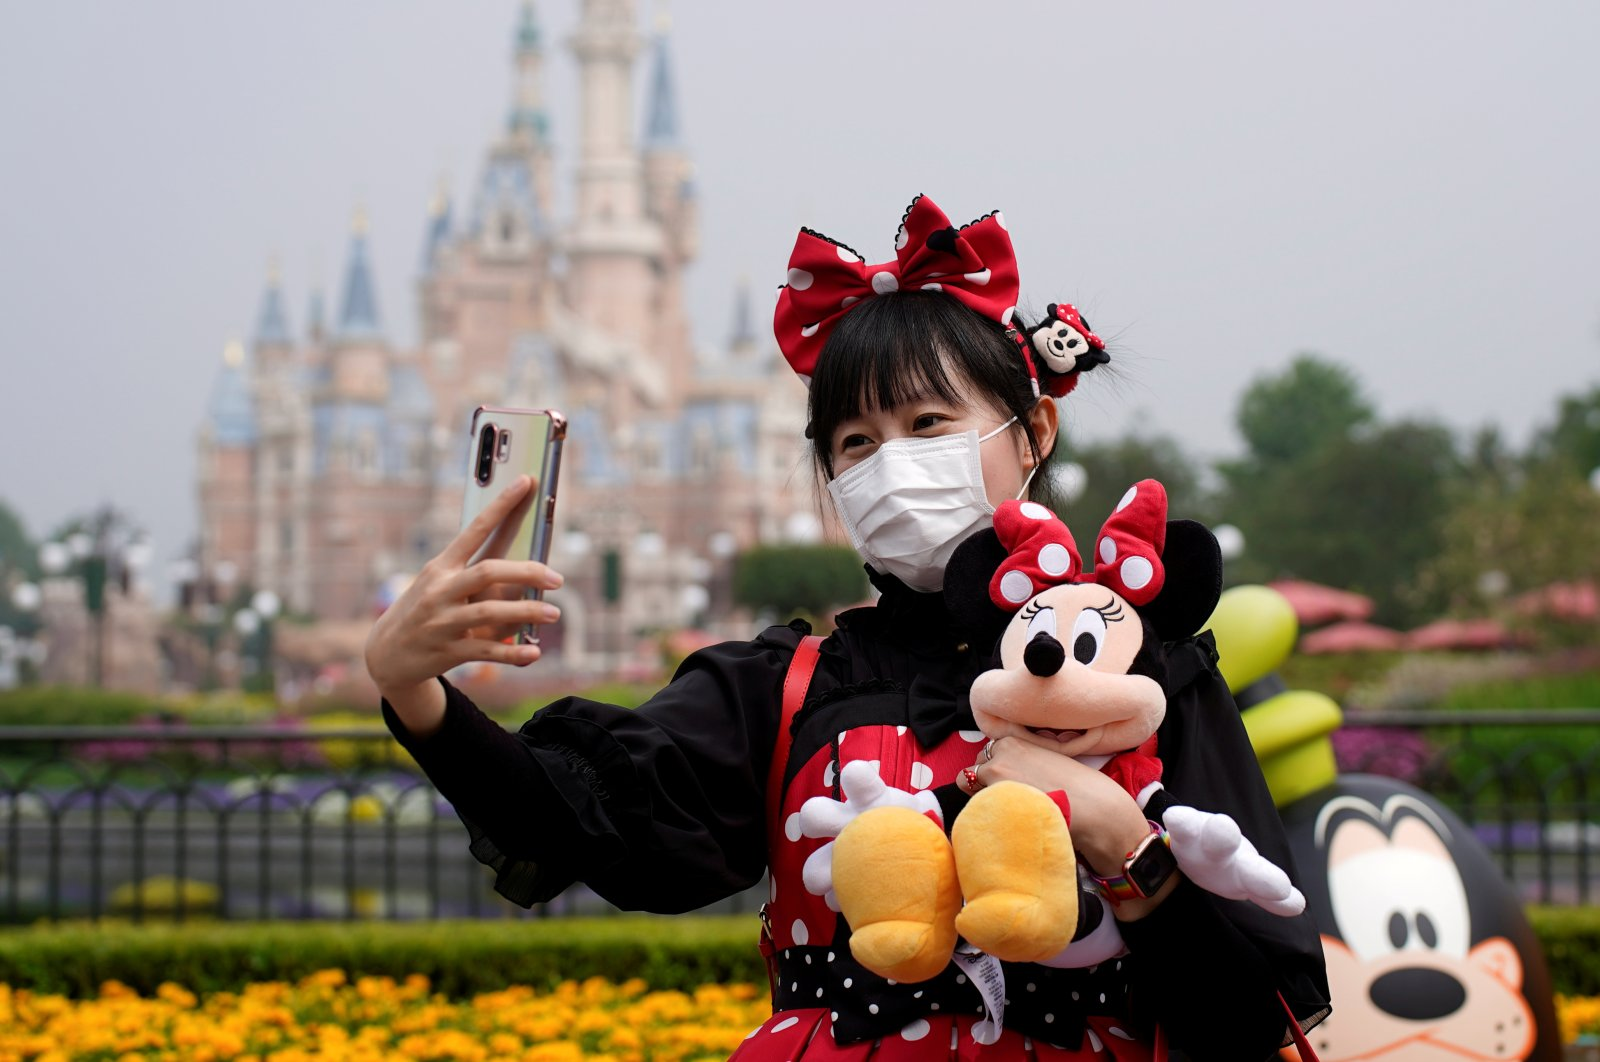 A visitor dressed as a Disney character takes a selfie while wearing a protective face mask at Shanghai Disney Resort as the Shanghai Disneyland theme park reopens following a shutdown due to the coronavirus outbreak, in Shanghai, China, May 11, 2020. (Reuters Photo)